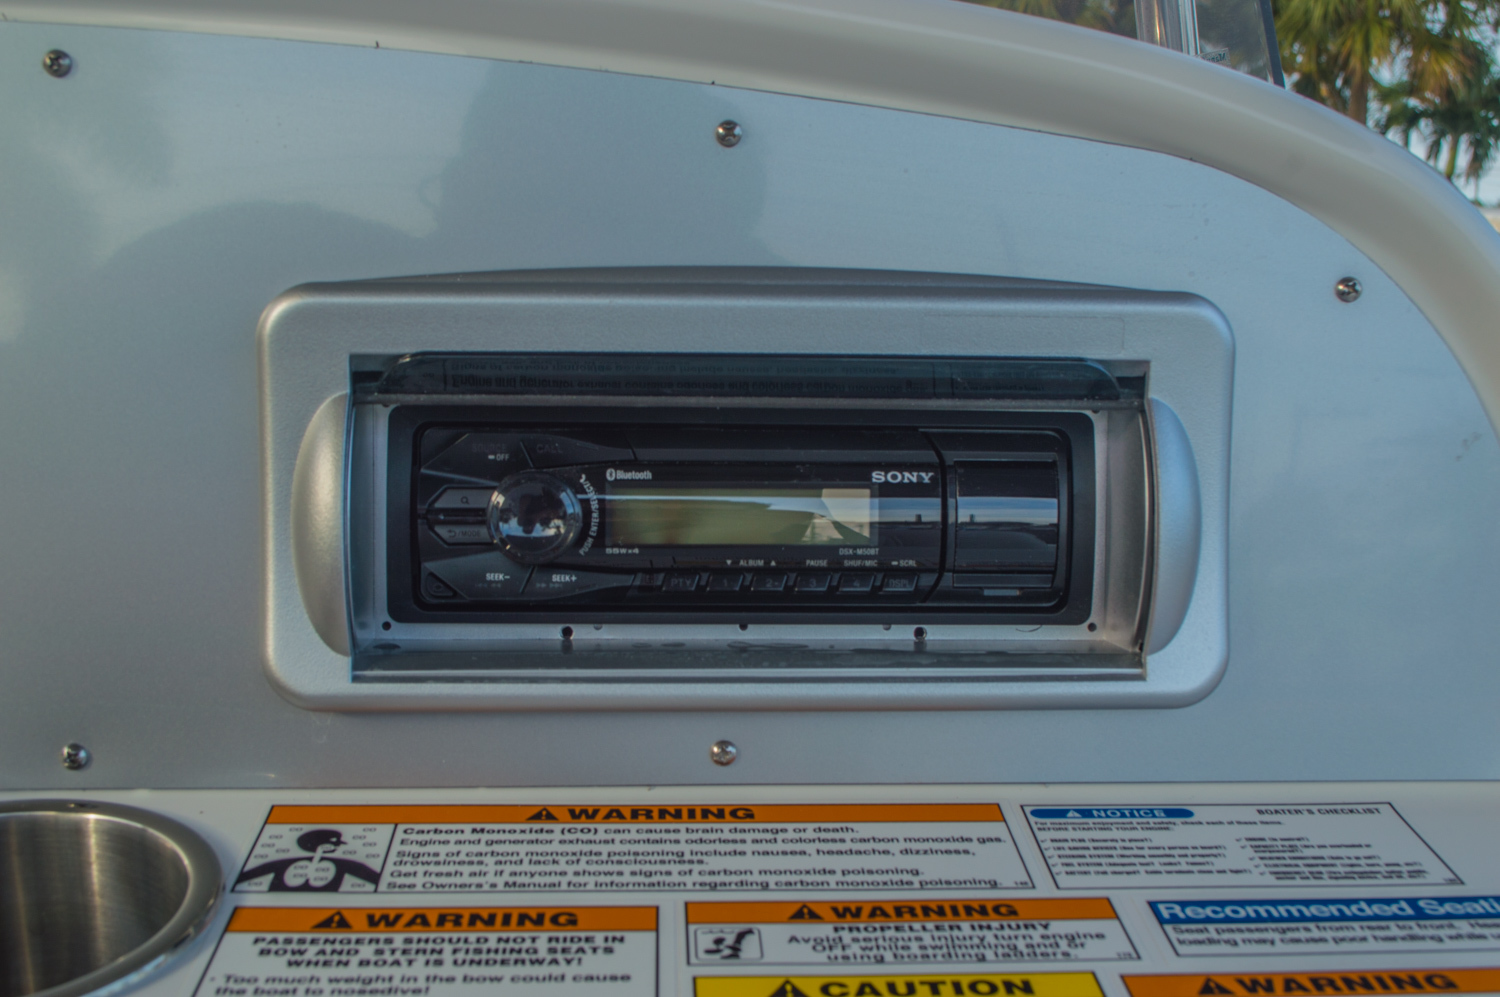 Thumbnail 25 for New 2016 Hurricane CC211 Center Consle boat for sale in West Palm Beach, FL